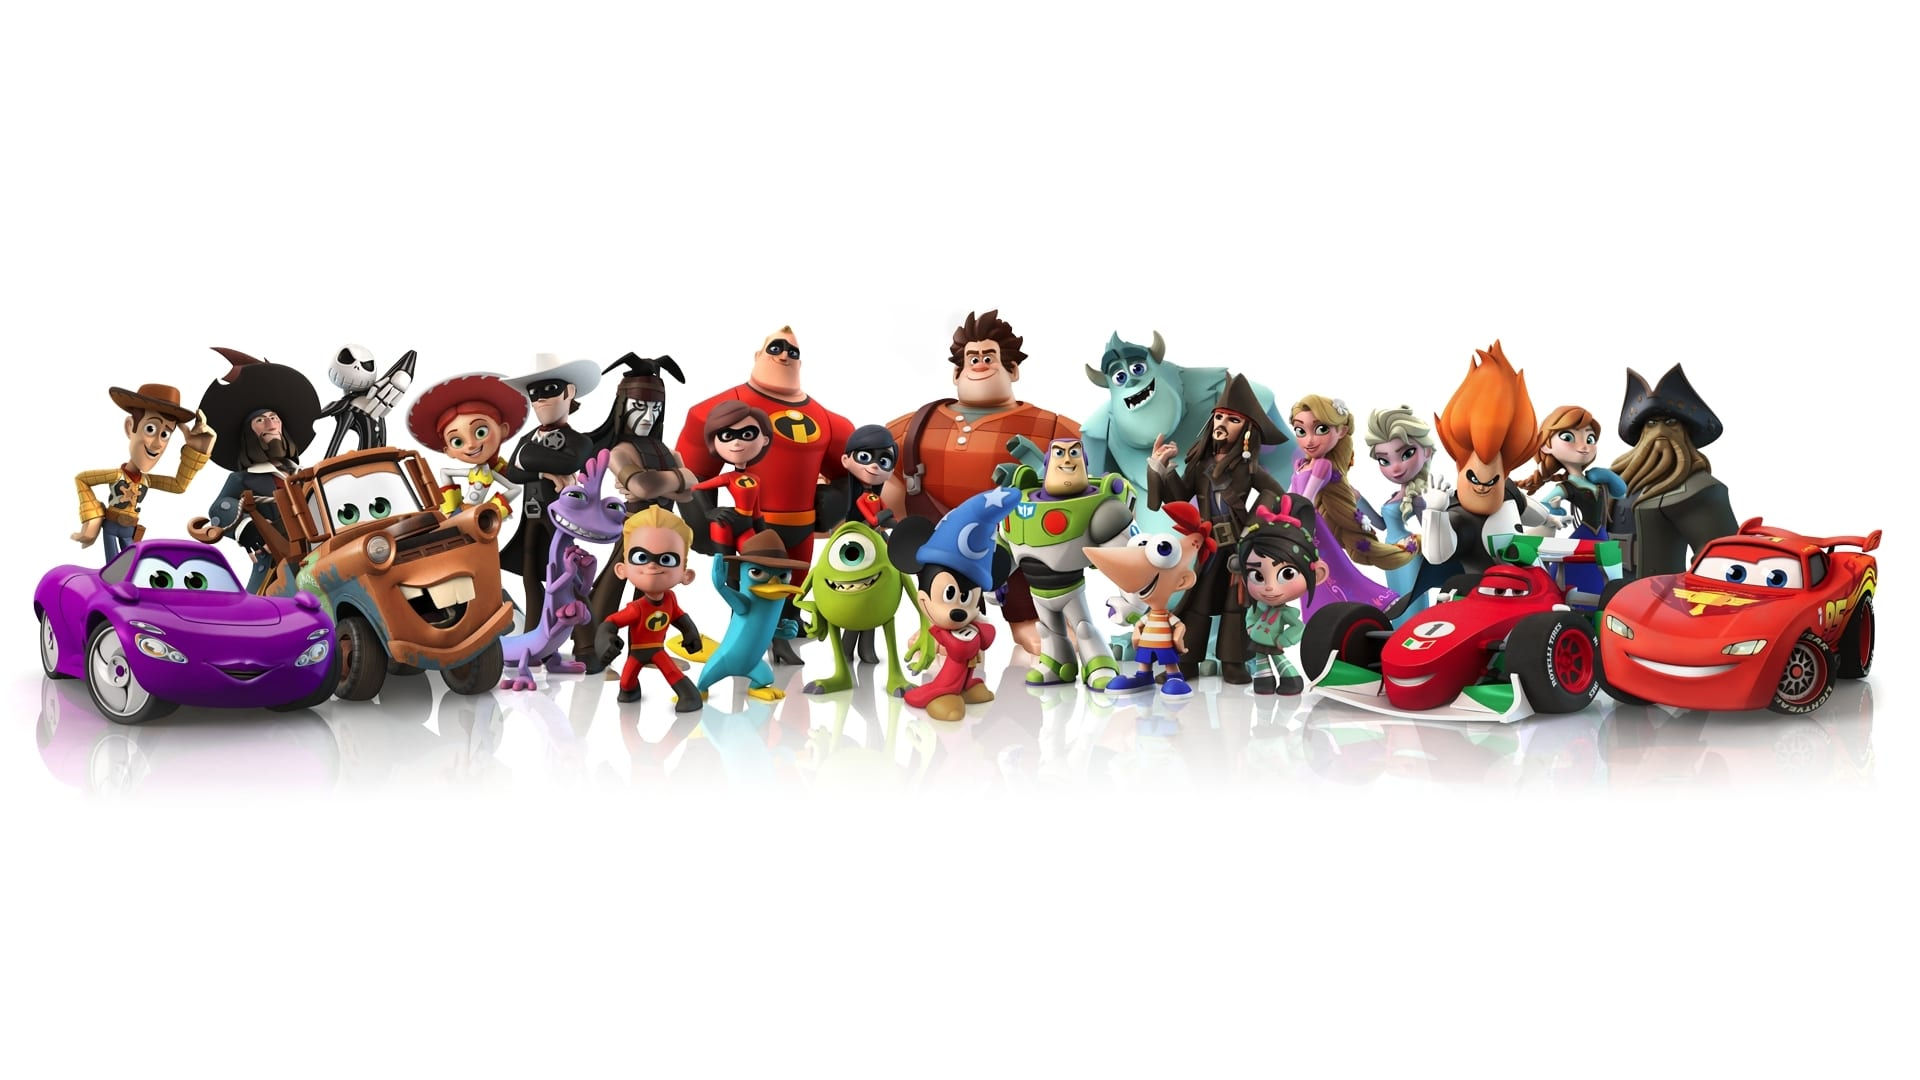 Disney Infinity Character Lineup